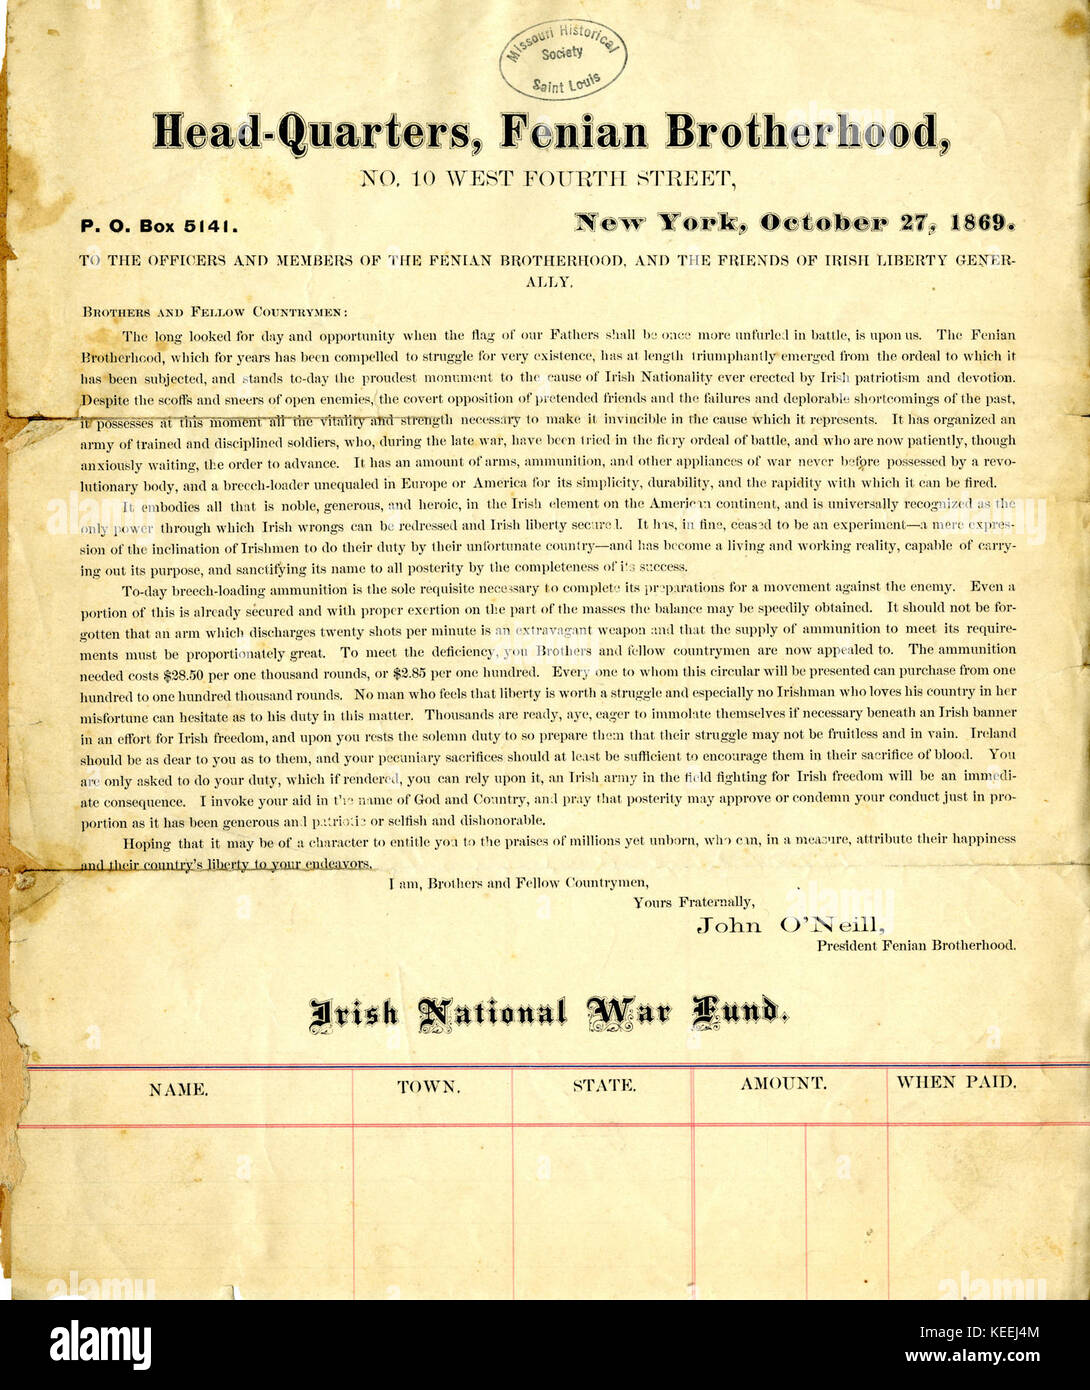 Circular letter of john oneill to the officers and members of the circular letter of john oneill to the officers and members of the fenian brotherhood and the friends of irish liberty generally headquarters thecheapjerseys Image collections